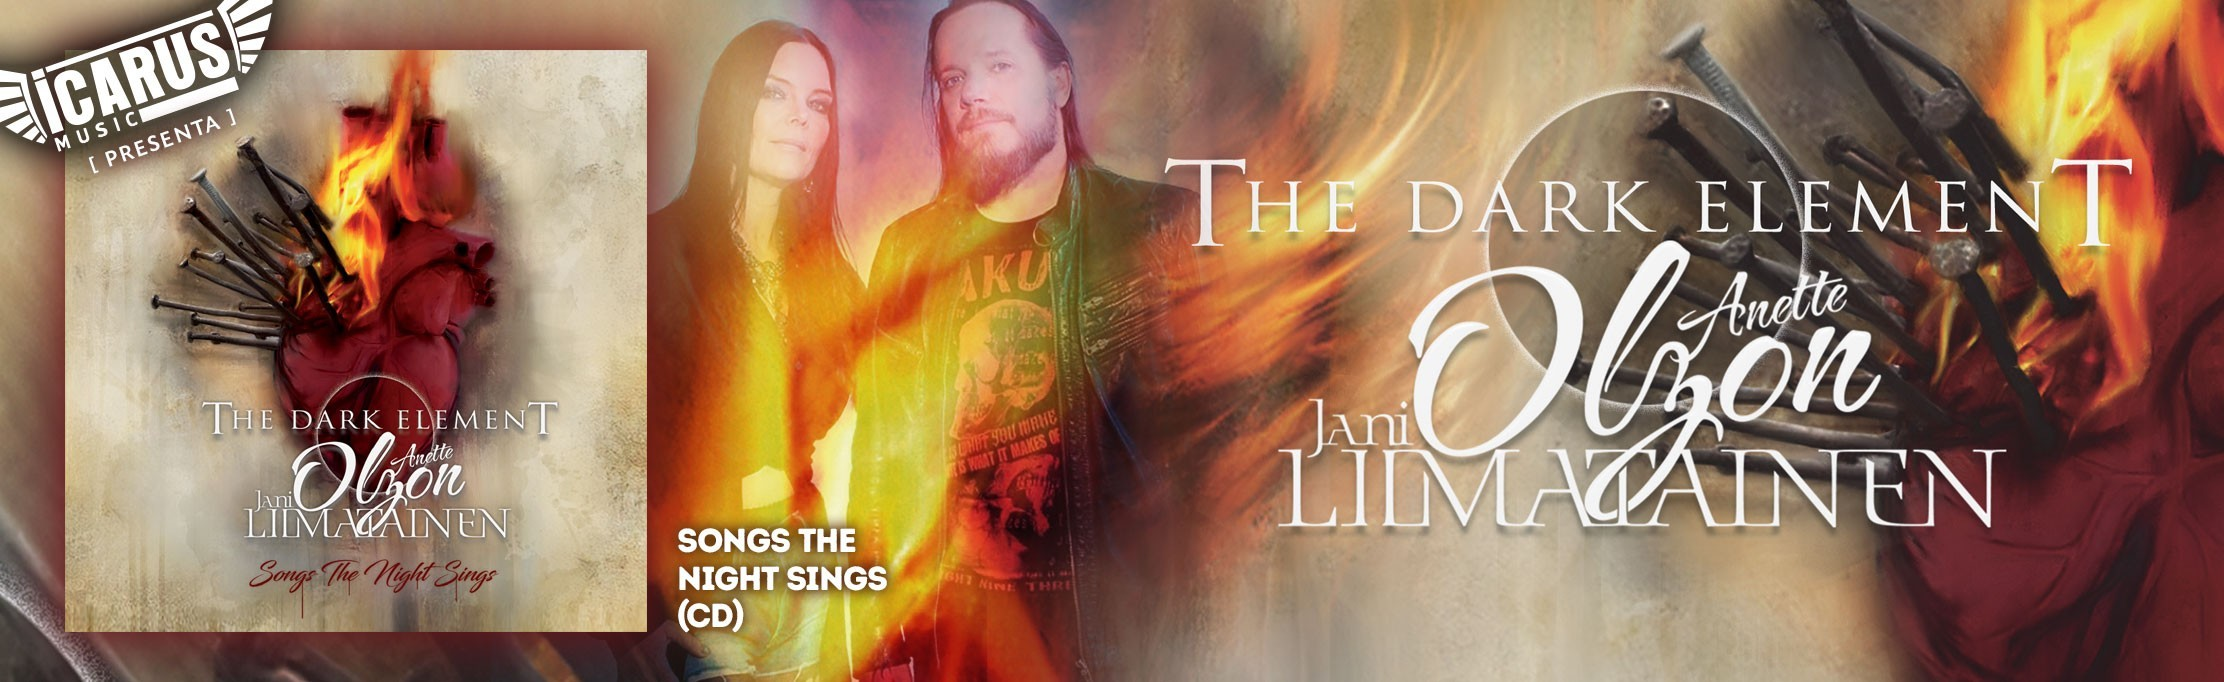 THE DARK ELEMENT - Song the Night  Sings - Cd El proyecto finlandés creado por Anette Olzon, ex cantante de Nightwish, junto a Jani Liimatainen